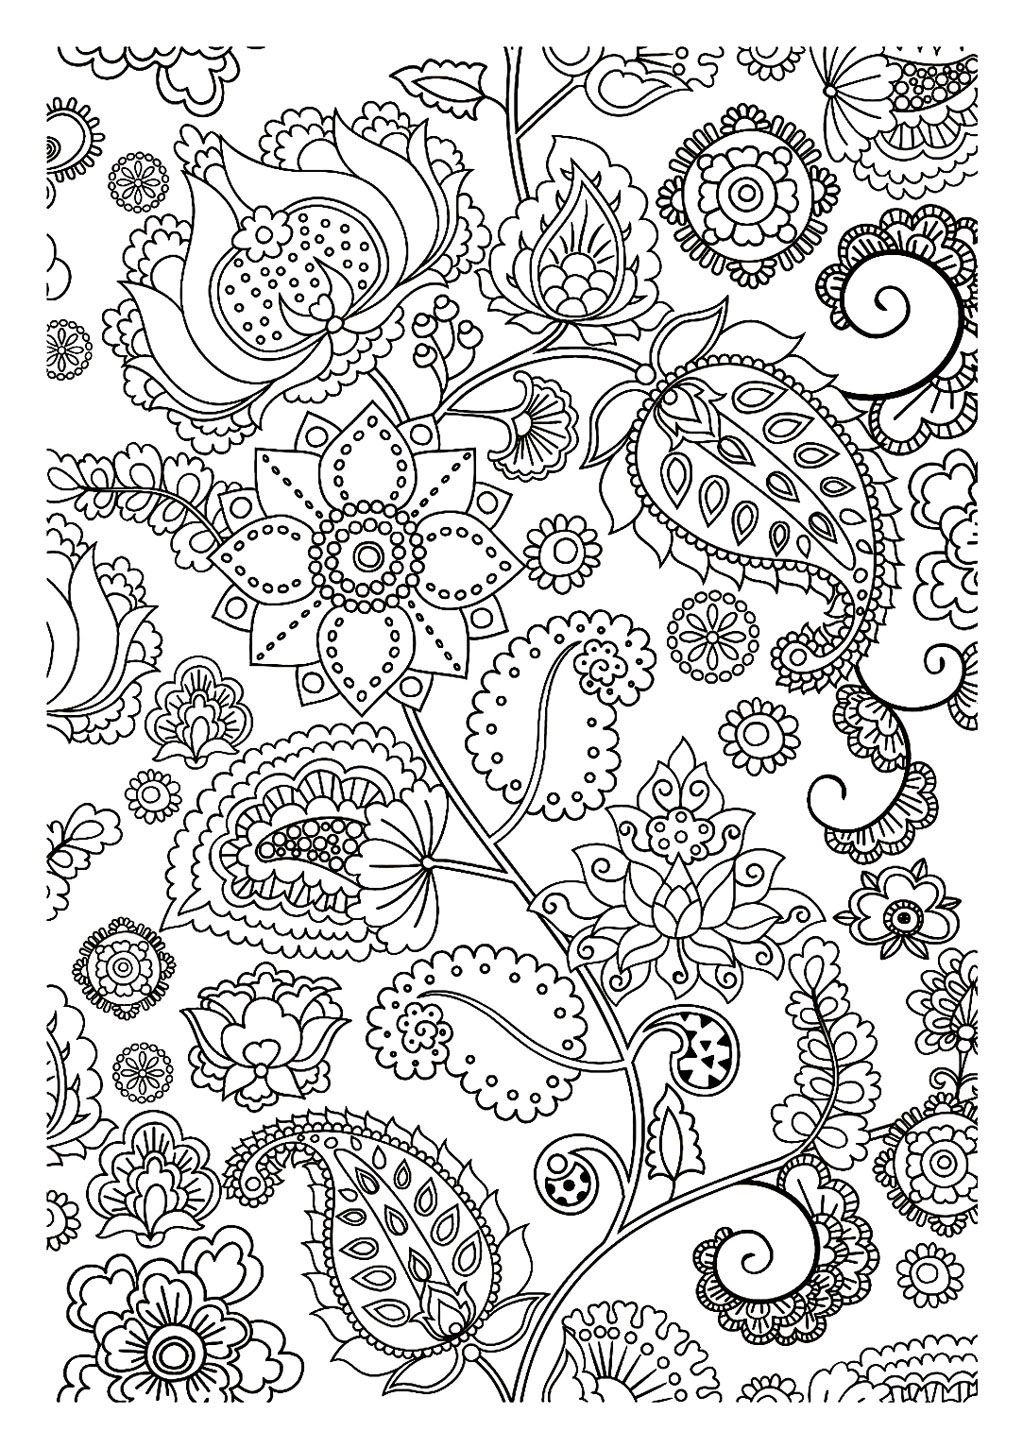 Free Flowers And Leaves Zen Tangle Coloring Page For Adults